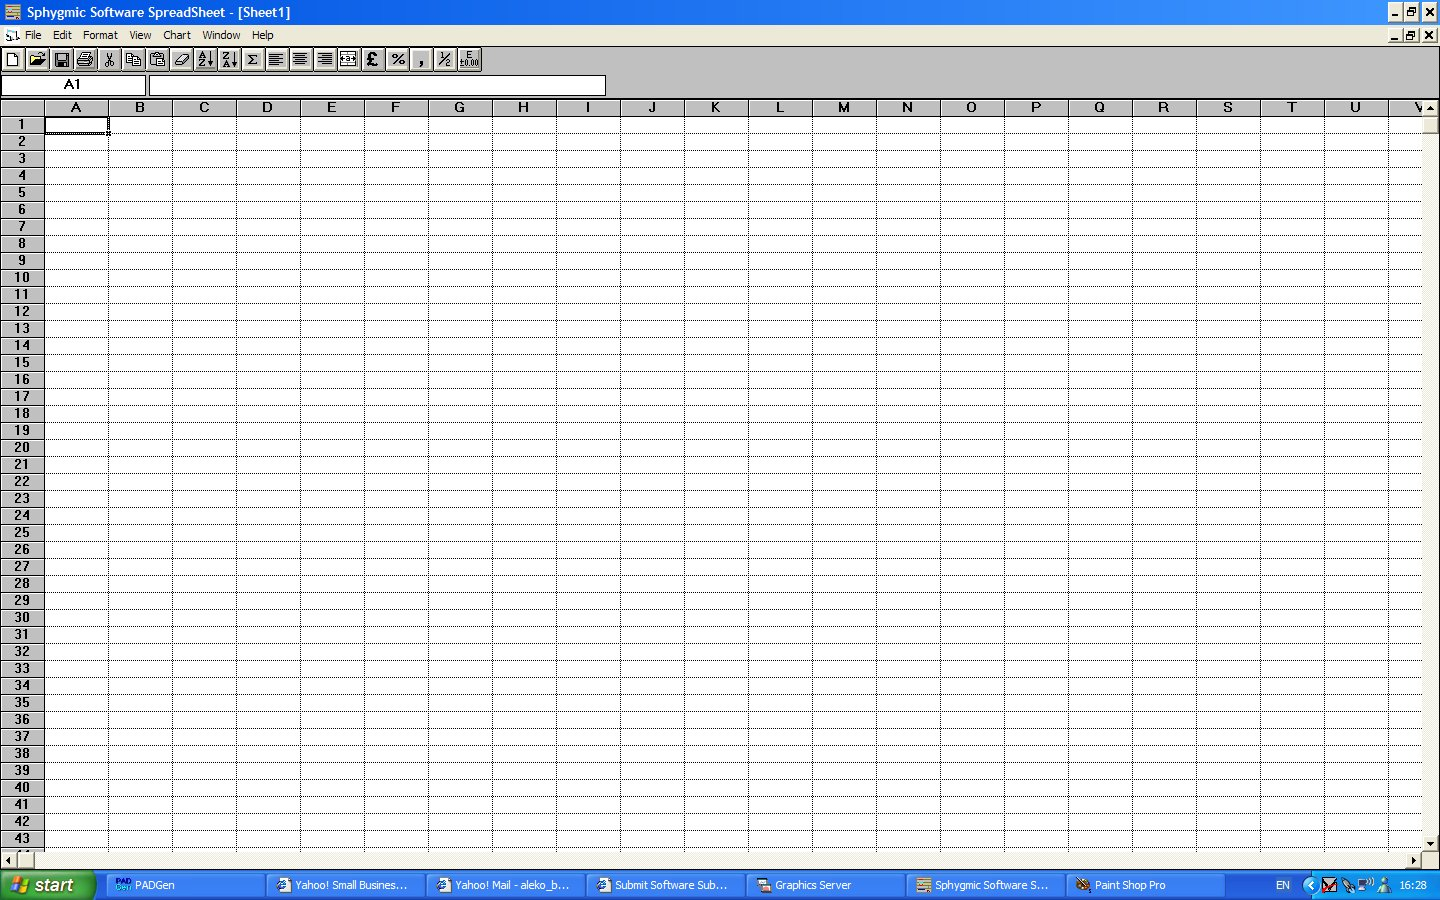 download Different Types Of Spreadsheet Software